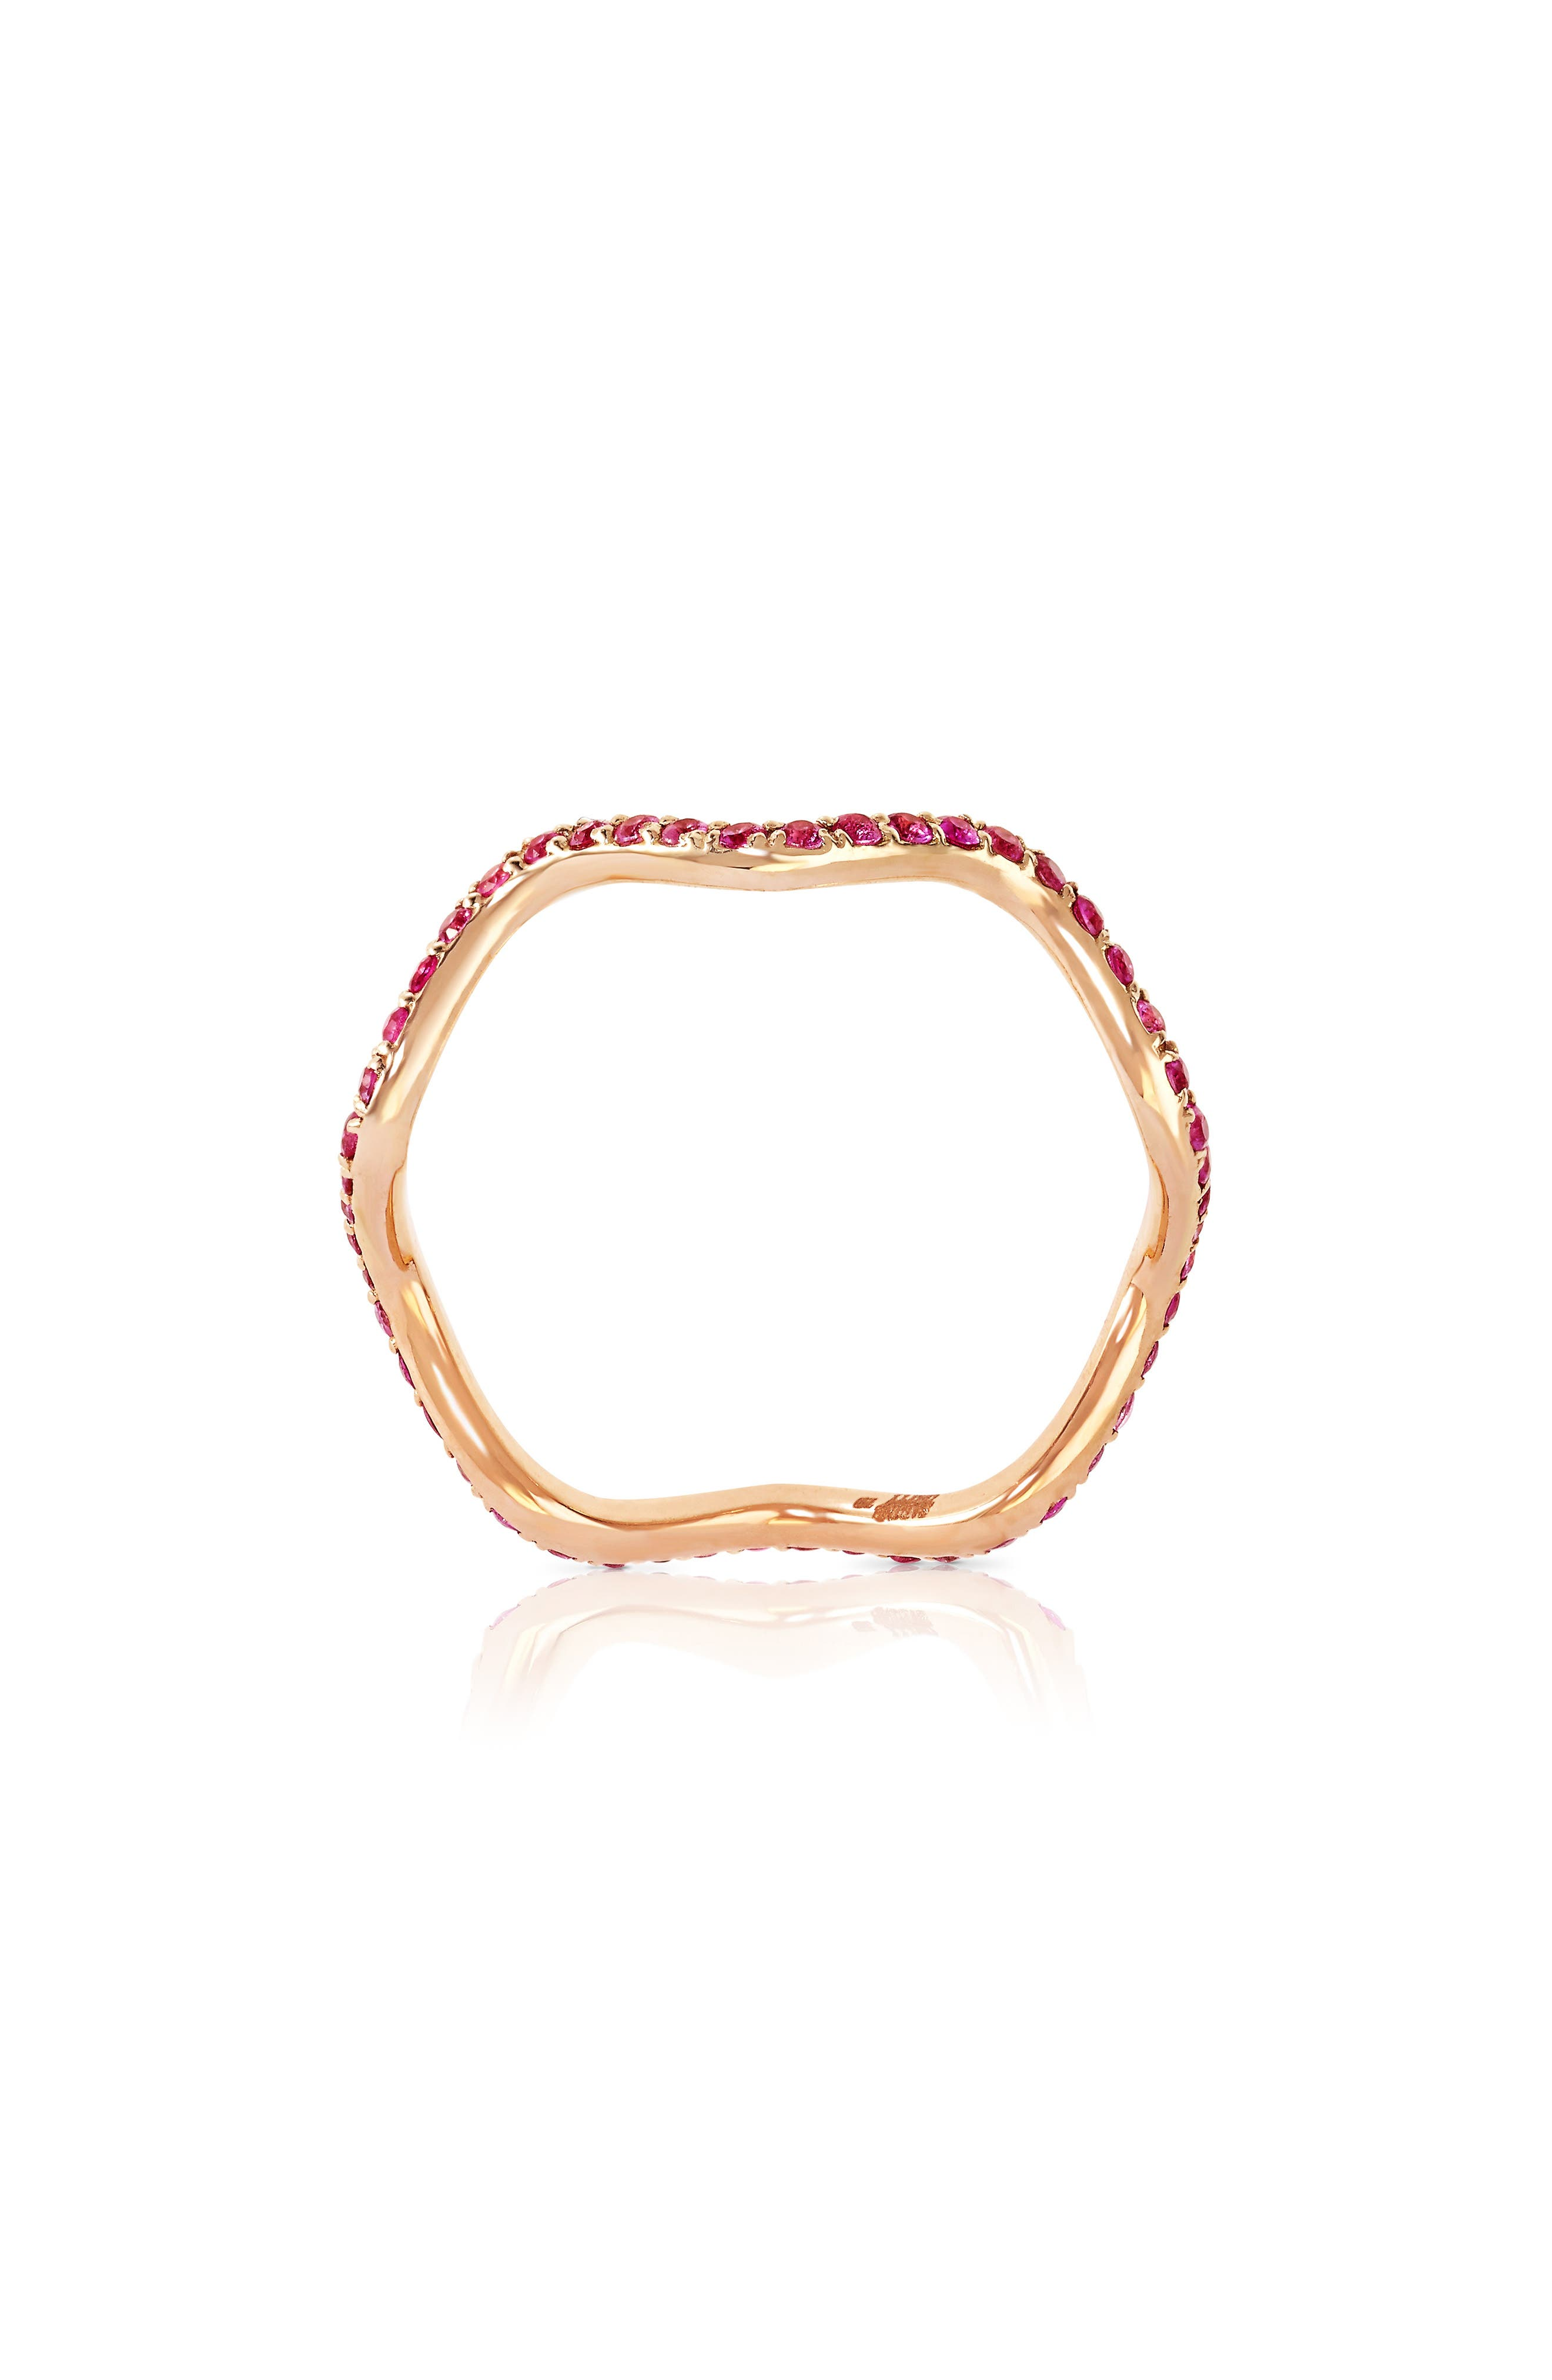 Baby Memphis Pink Sapphire Wave Band Ring,                             Alternate thumbnail 3, color,                             Rose Gold Pink Sapphire